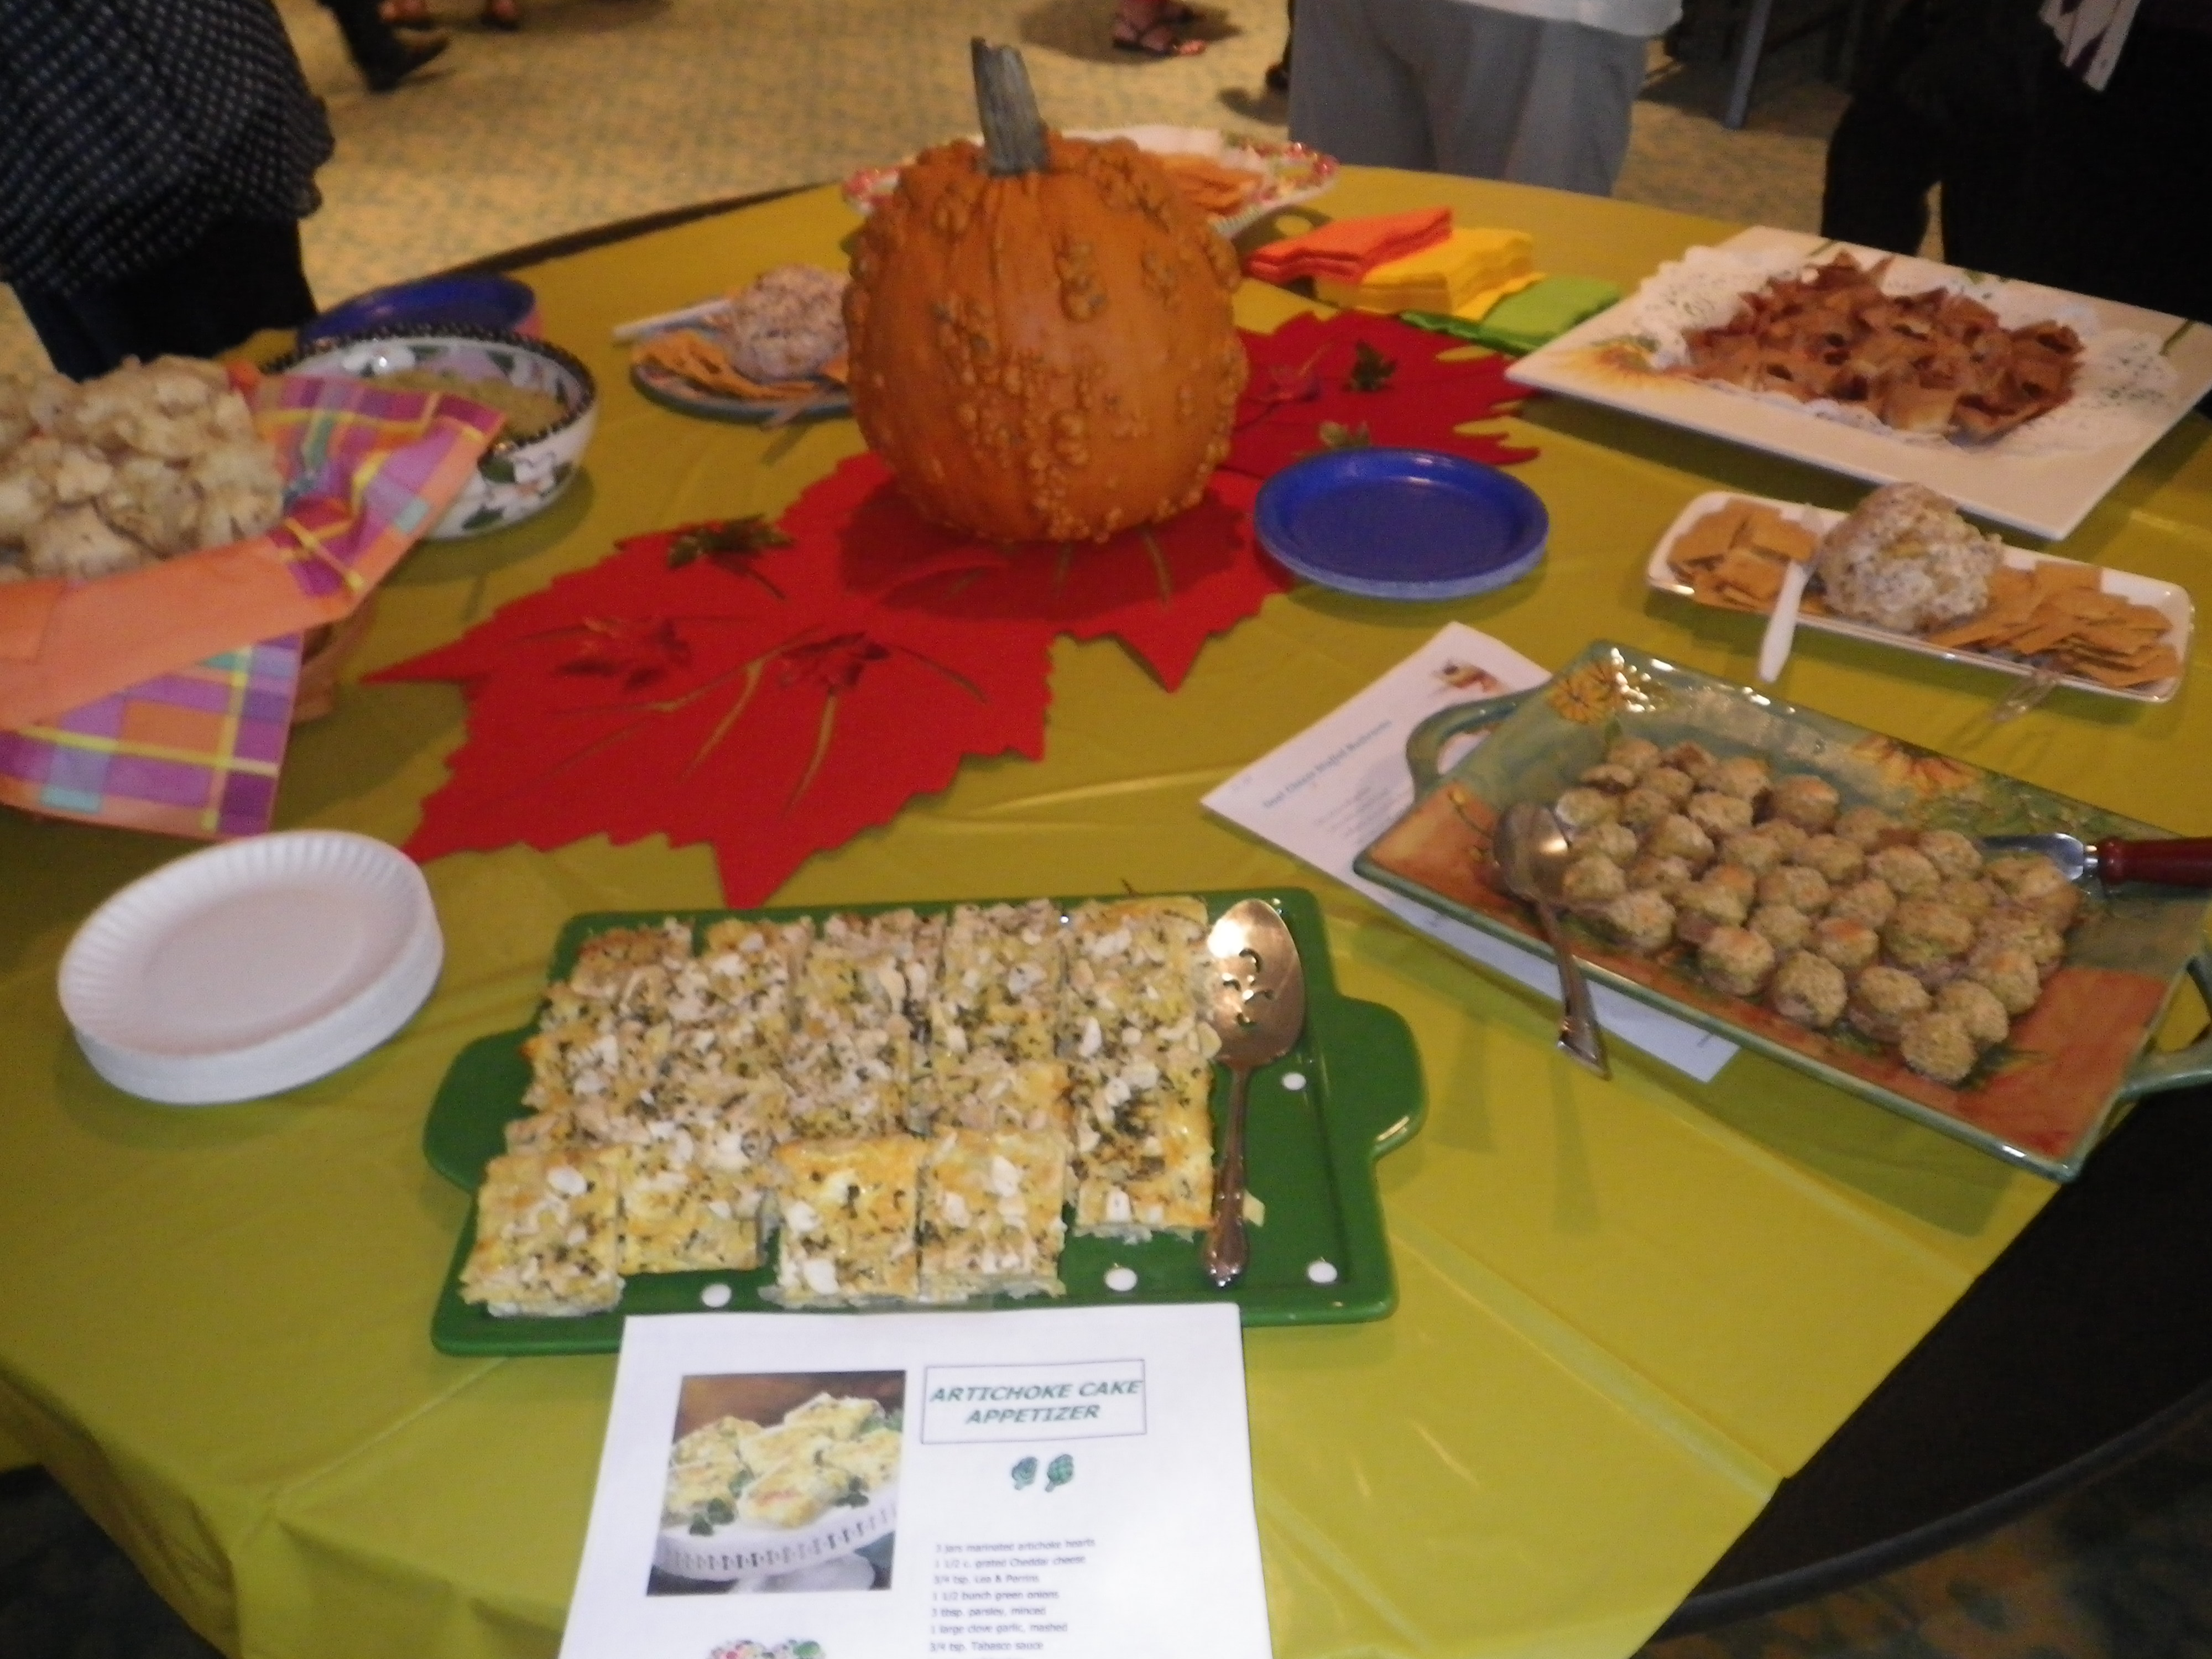 pot luck food safety tips nutritioneducationstore com label it all